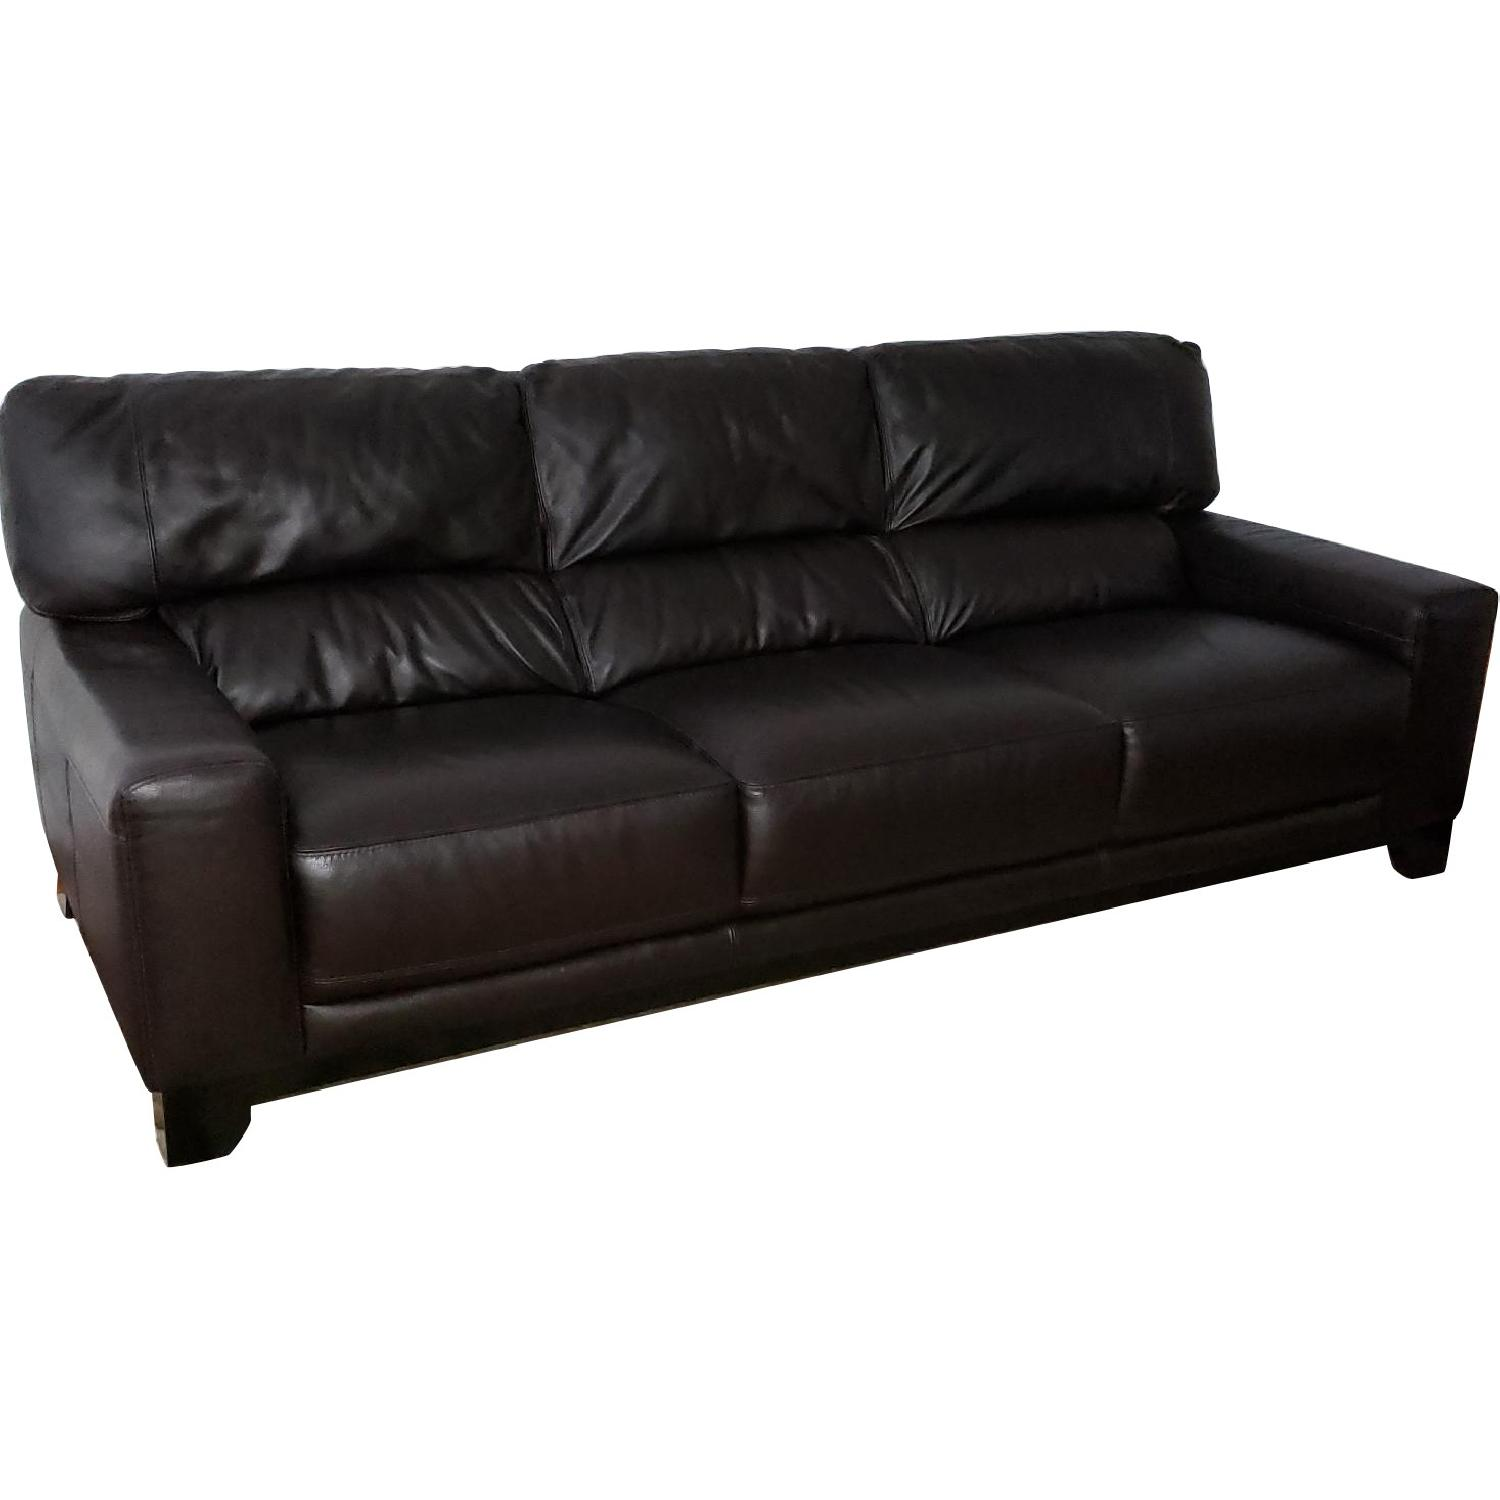 Luke Leather 3 Seater Sofa